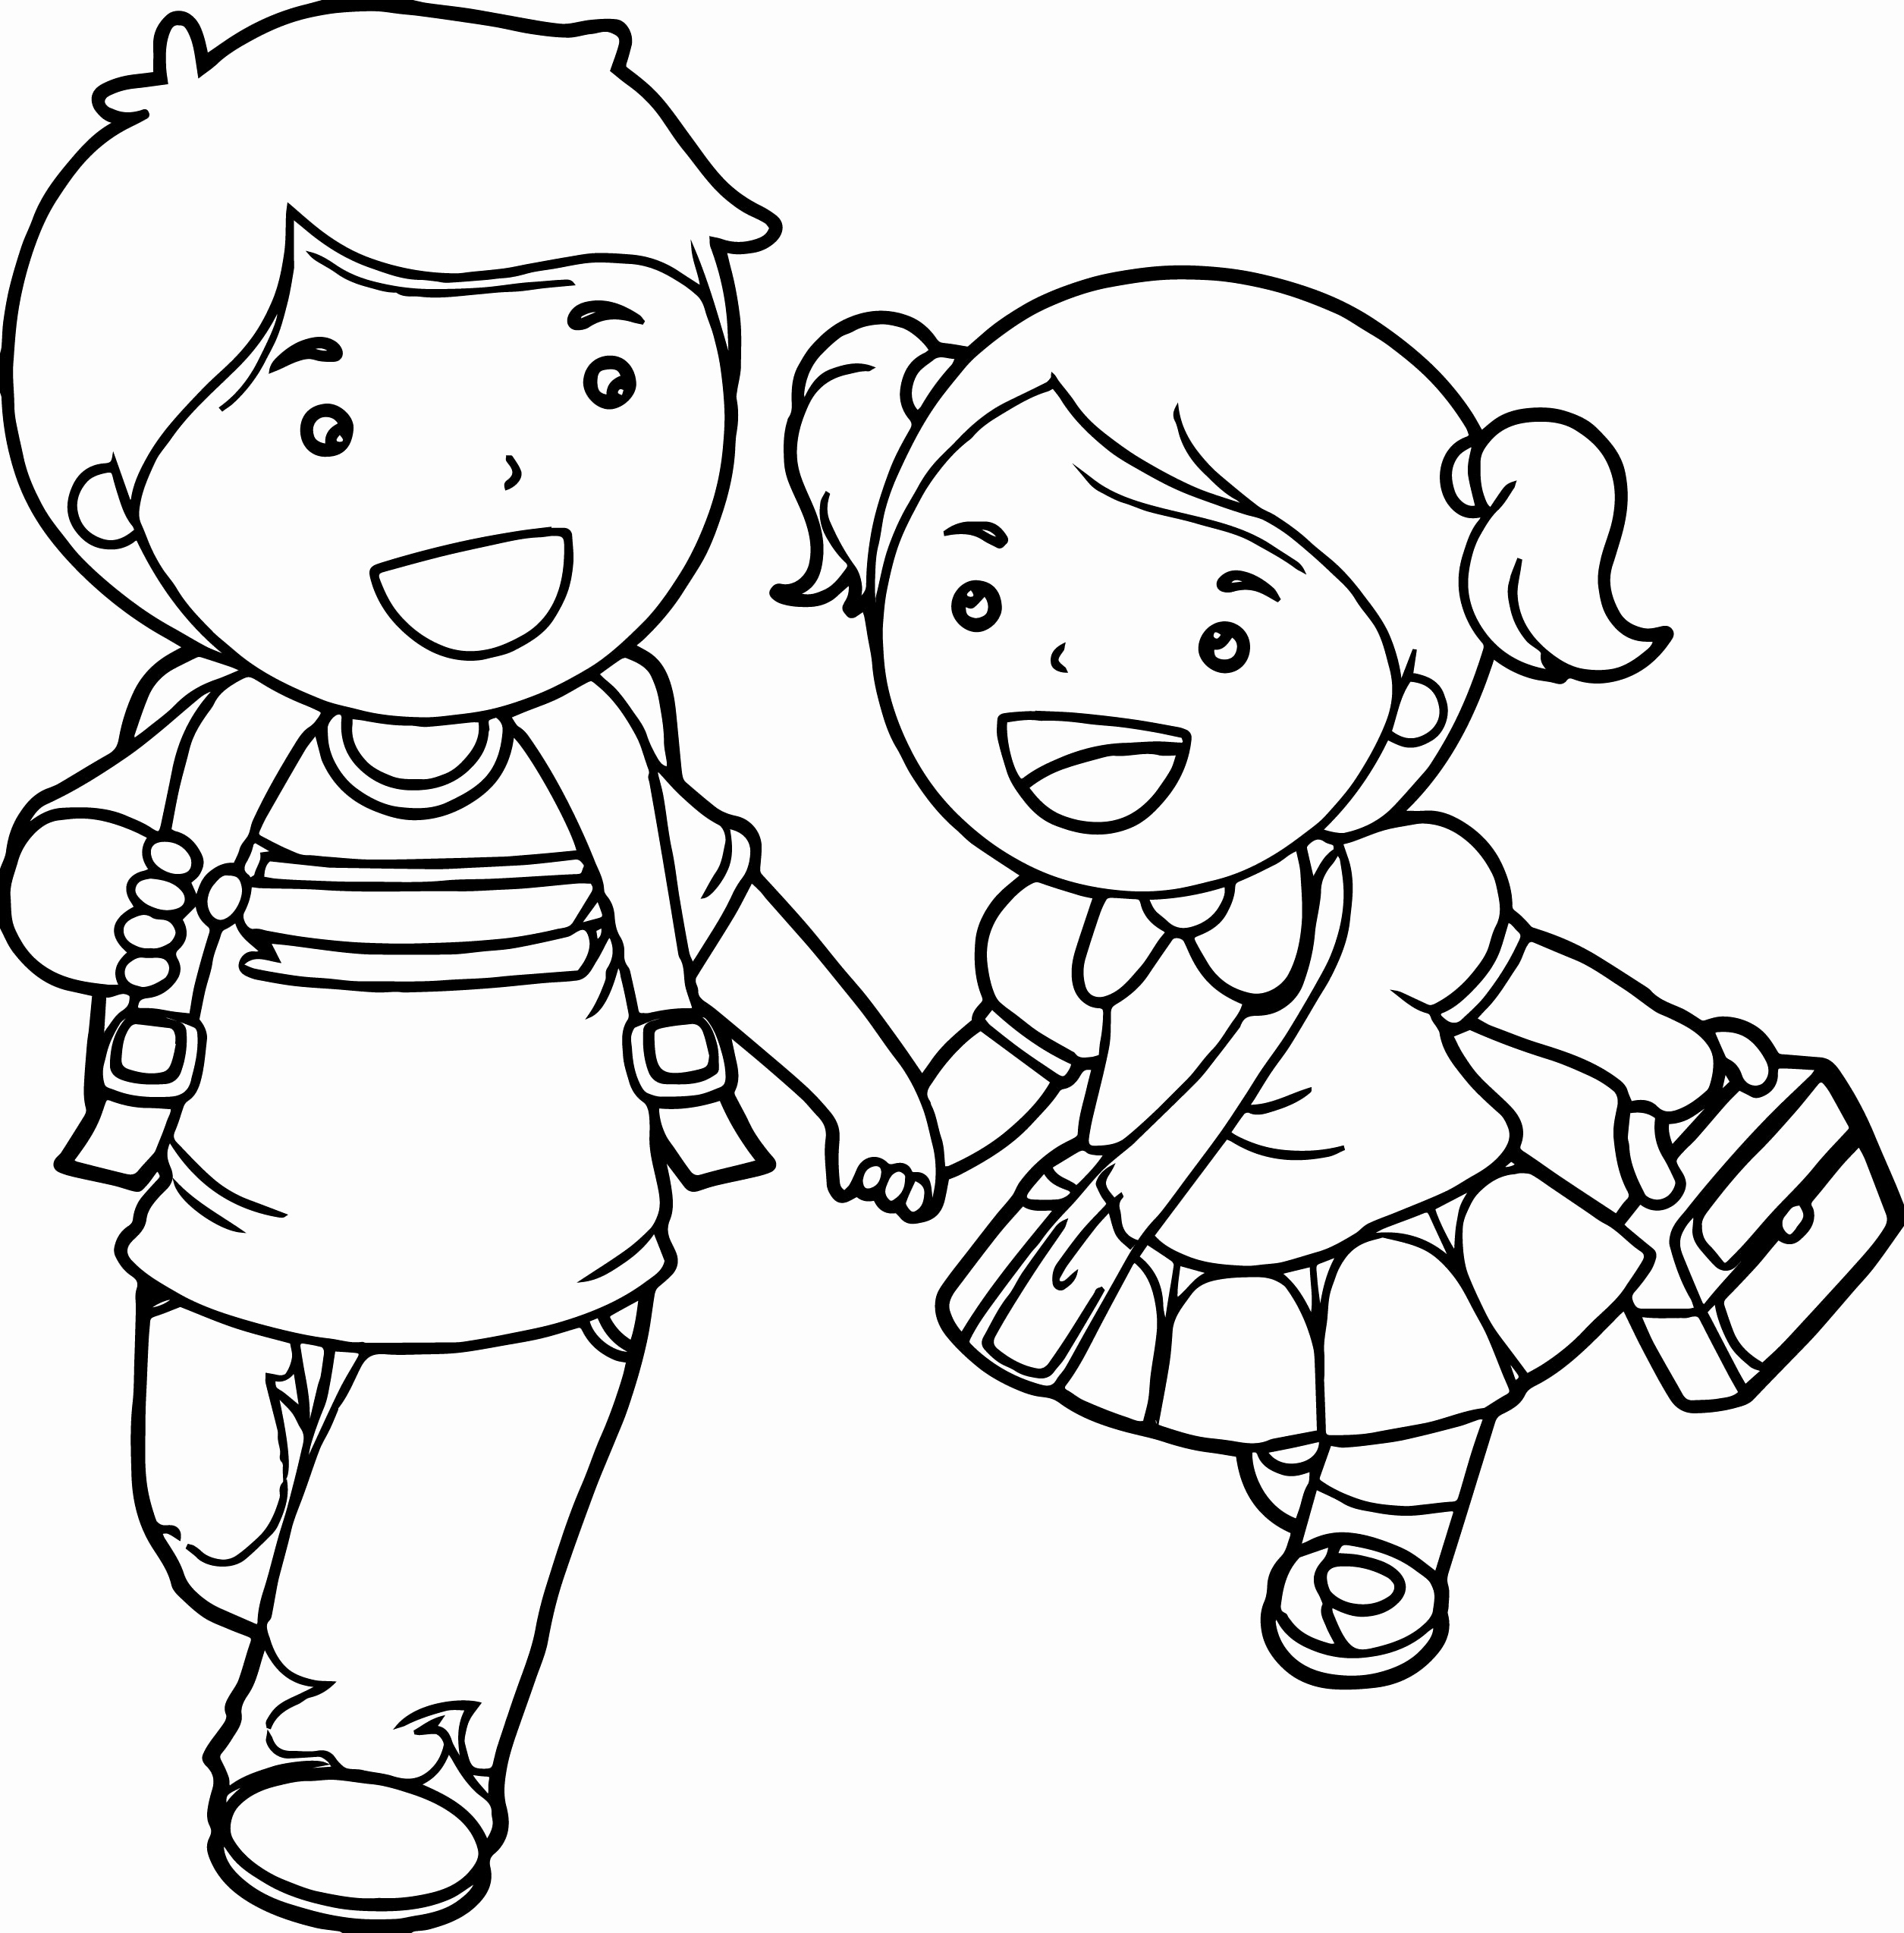 school girl coloring pages school girl coloring pages at getcoloringscom free girl pages school coloring